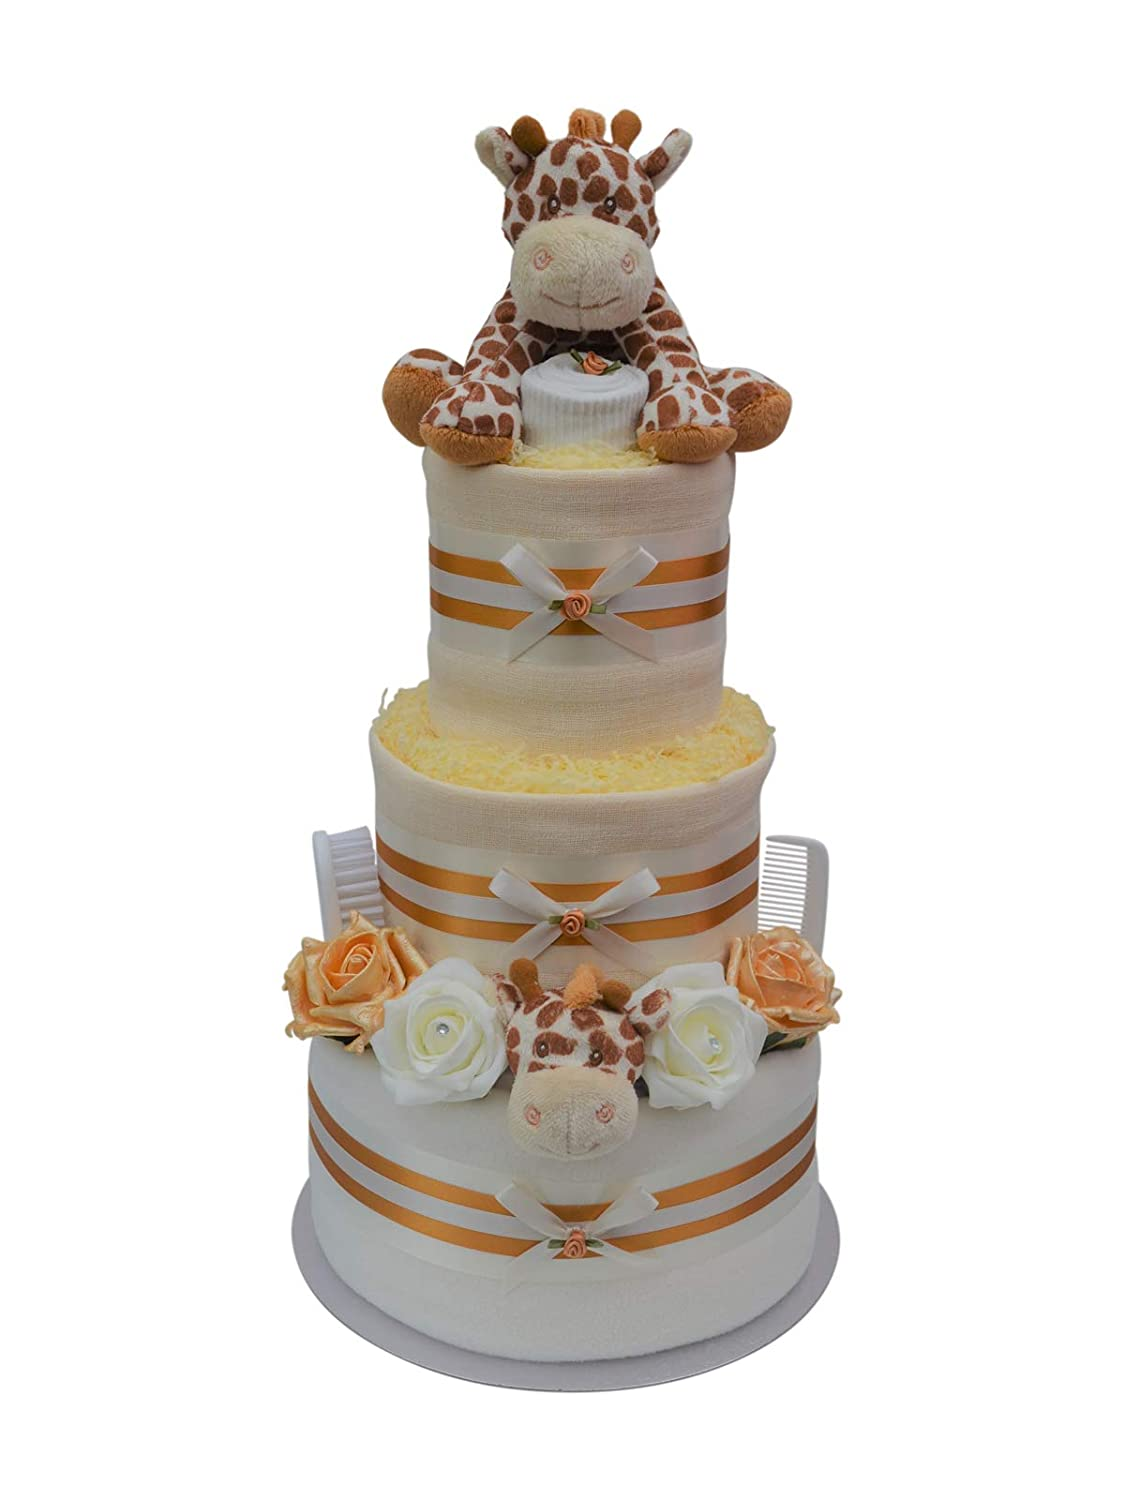 Gorgeous 3 Tier Gold Unisex Giraffe New Baby Nappy Cake New Baby Shower Gift Hamper- Free Delivery! Packaged to Perfection 3TWRGIR